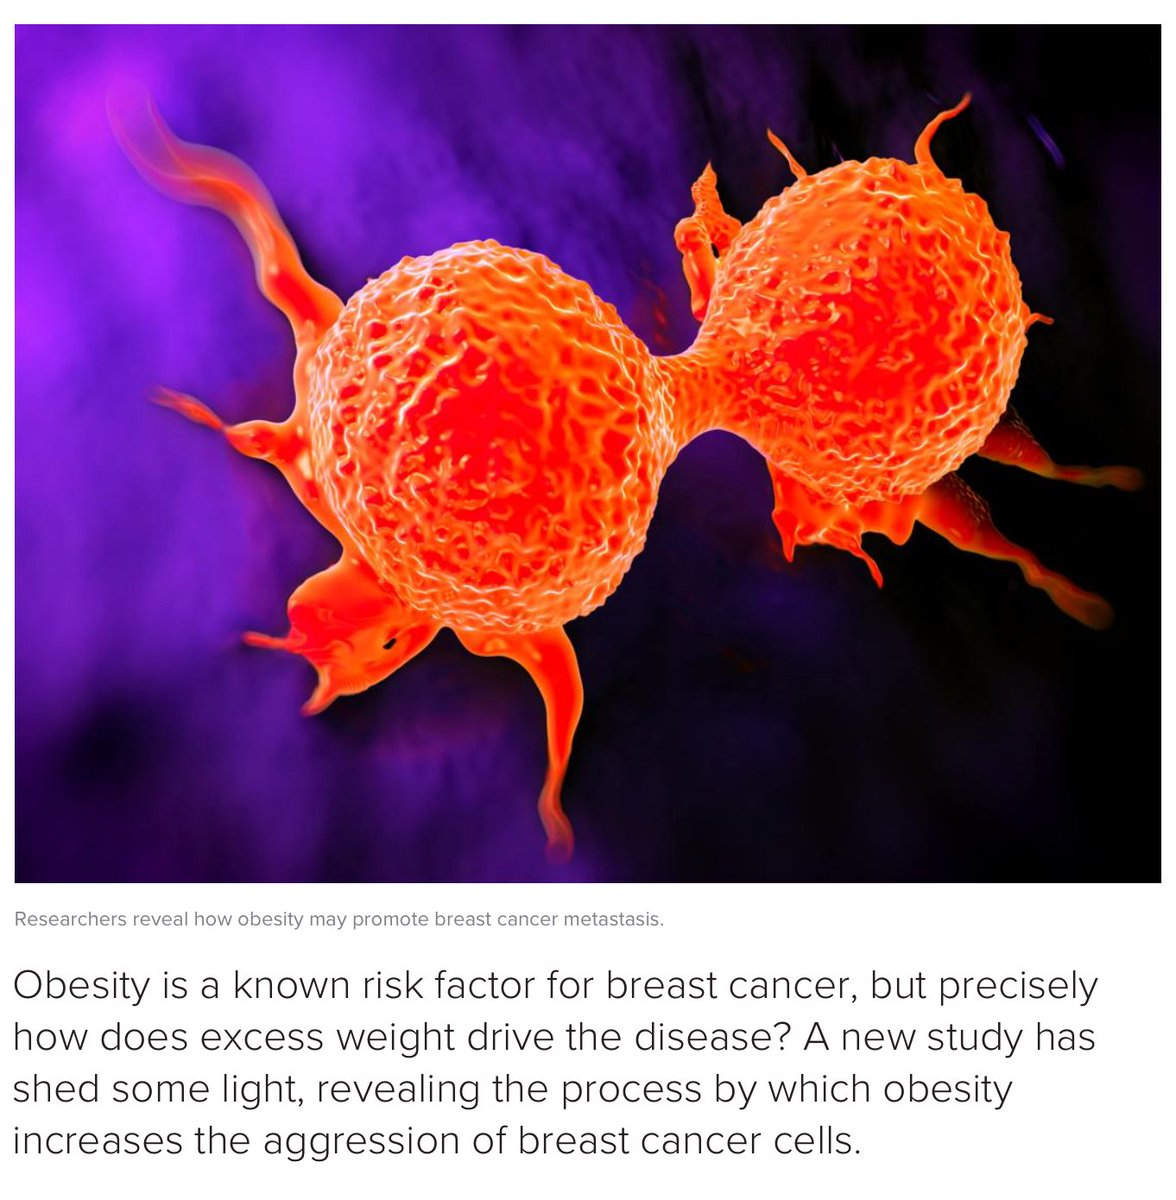 Did you know that after going through #menopause, #women who are obese are 20–40 percent more likely to develop breast #Cancer than women of a healthy weight. A new study shows how excess weight and  #obesity drives #breastcancer   https://www. medicalnewstoday.com/articles/31983 8.php &nbsp; … <br>http://pic.twitter.com/I72XZkUrVM